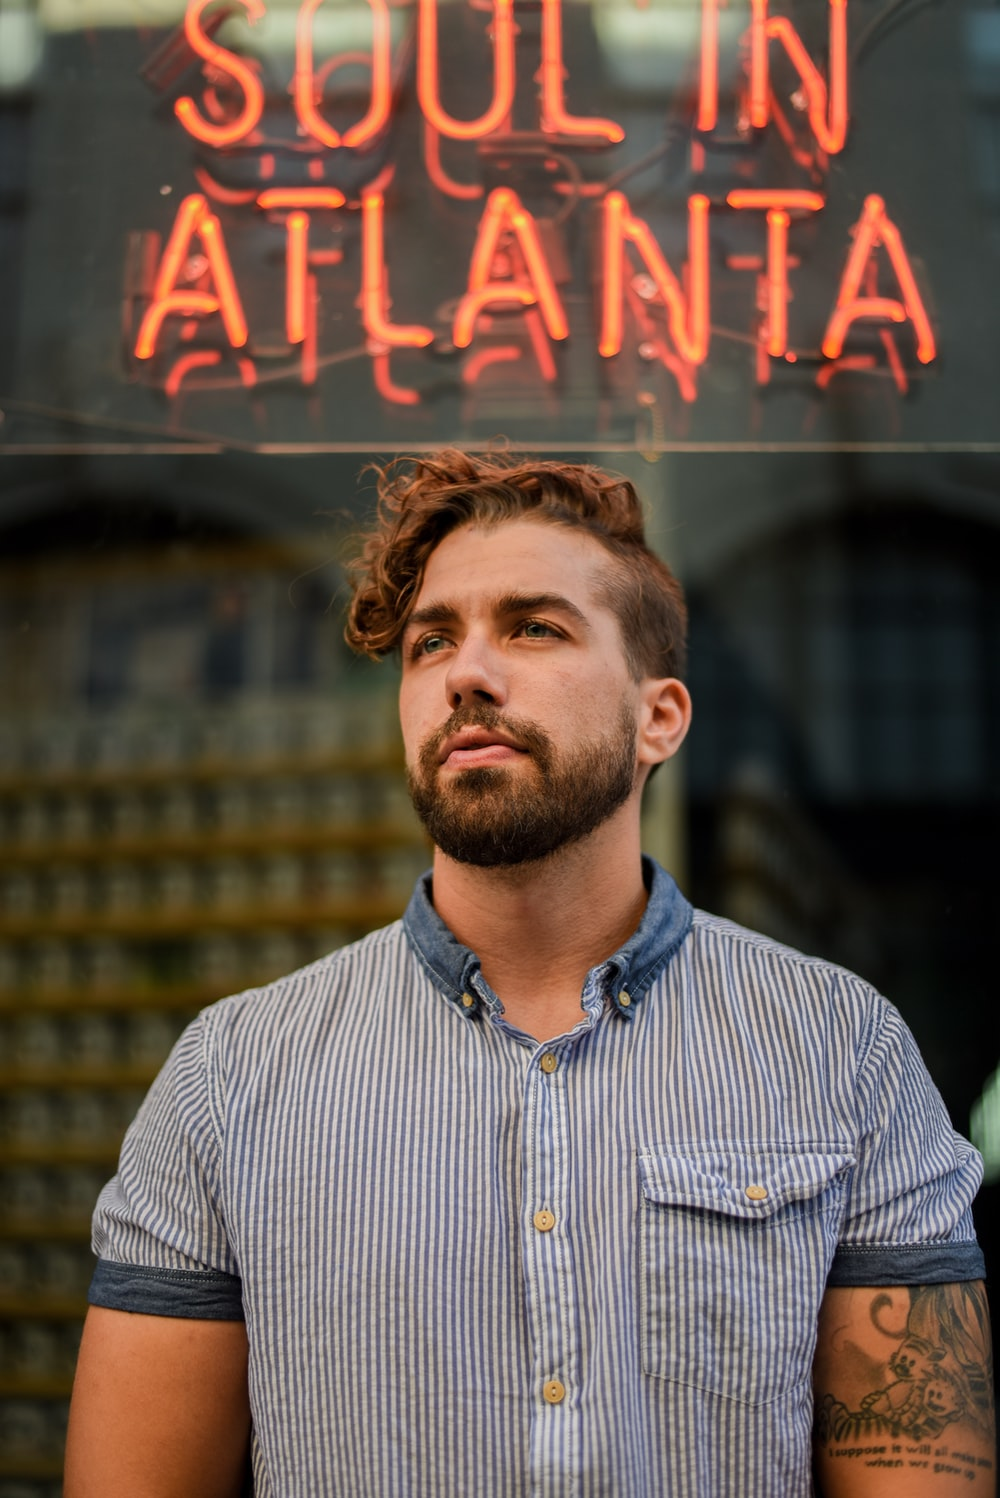 man standing near red neon signage